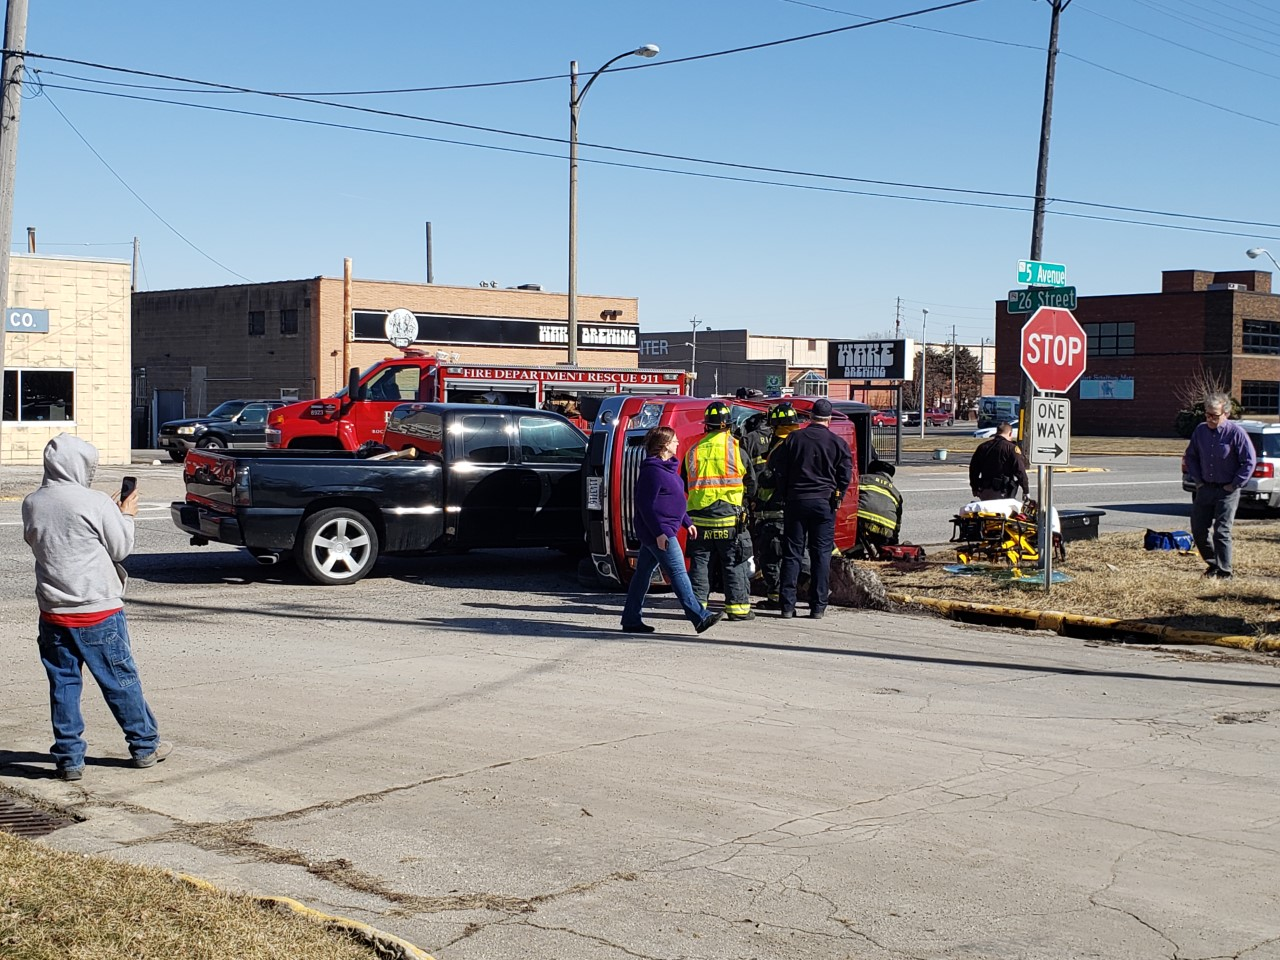 Roll-over accident in Rock Island on February 21 (photo: Bryan Bobb, OurQuadCities.com)